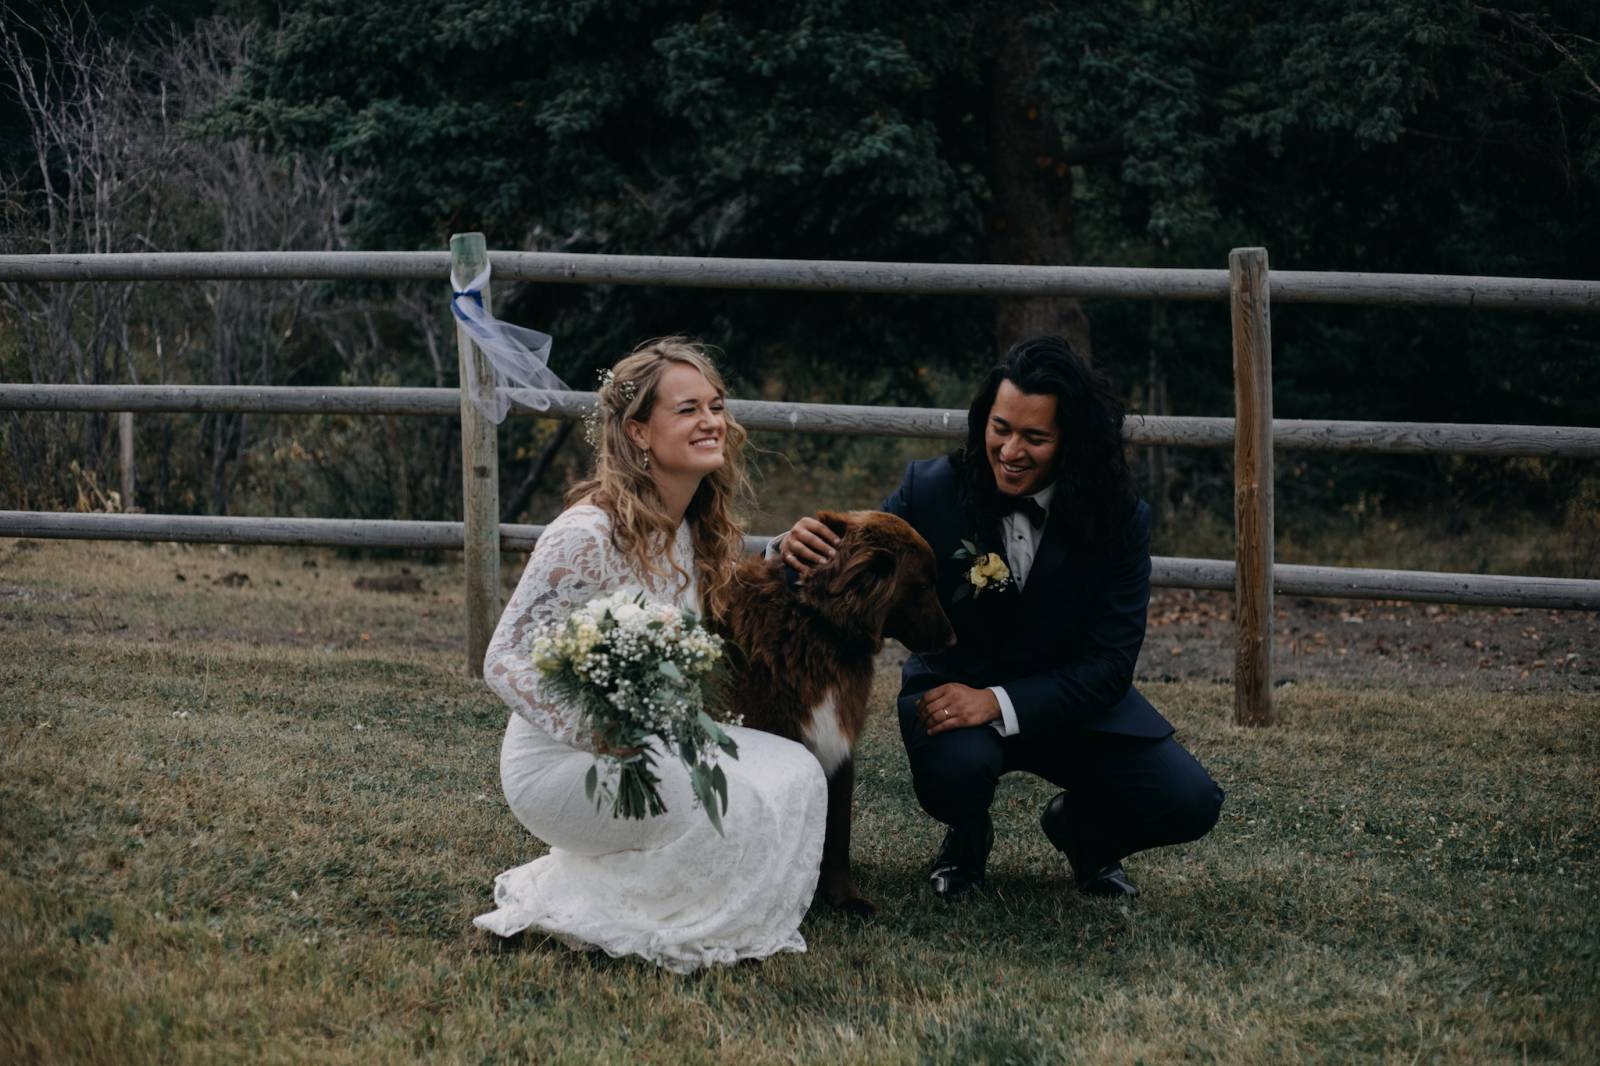 rustic bohemian wedding photo with dog captured by Alberta wedding photographer Malorie Reiter